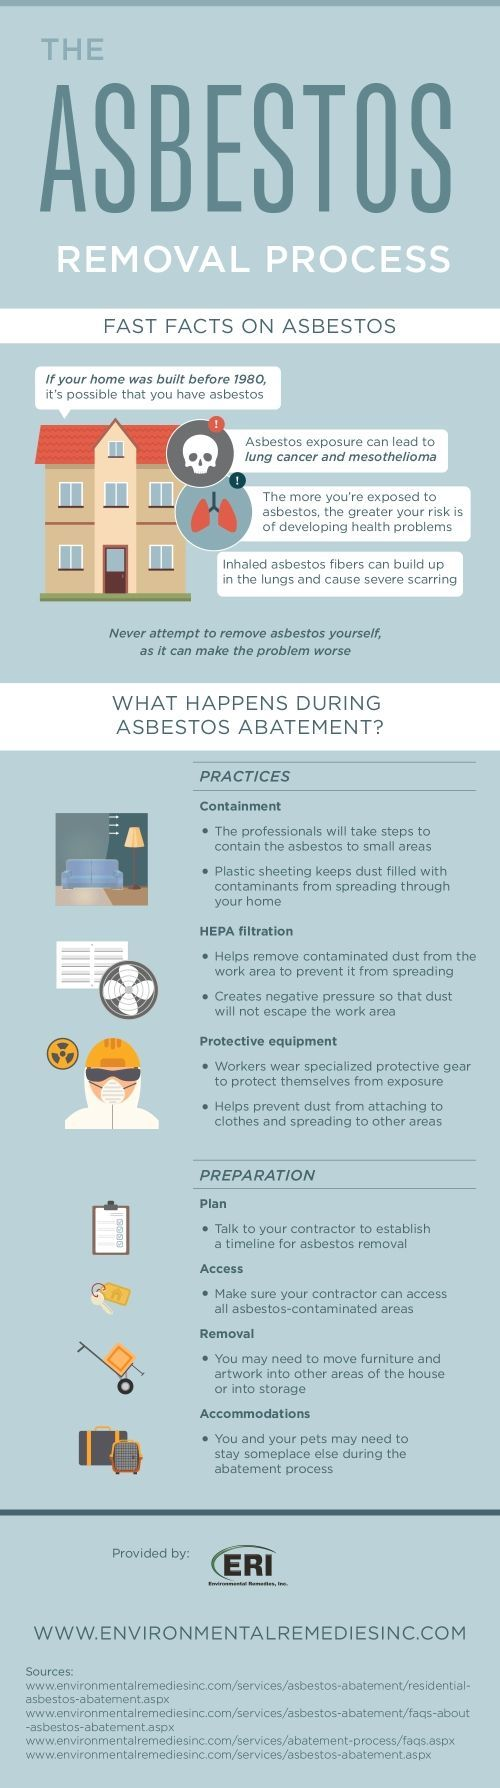 Asbestos removal should only be performed by someone with the appropriate training, education, and skills! Check out this infographic on the removal process to see how it works. #Infographic #Data visualization #asbestos  #lung cancer  #asbestos testing  #popcorn ceiling removal